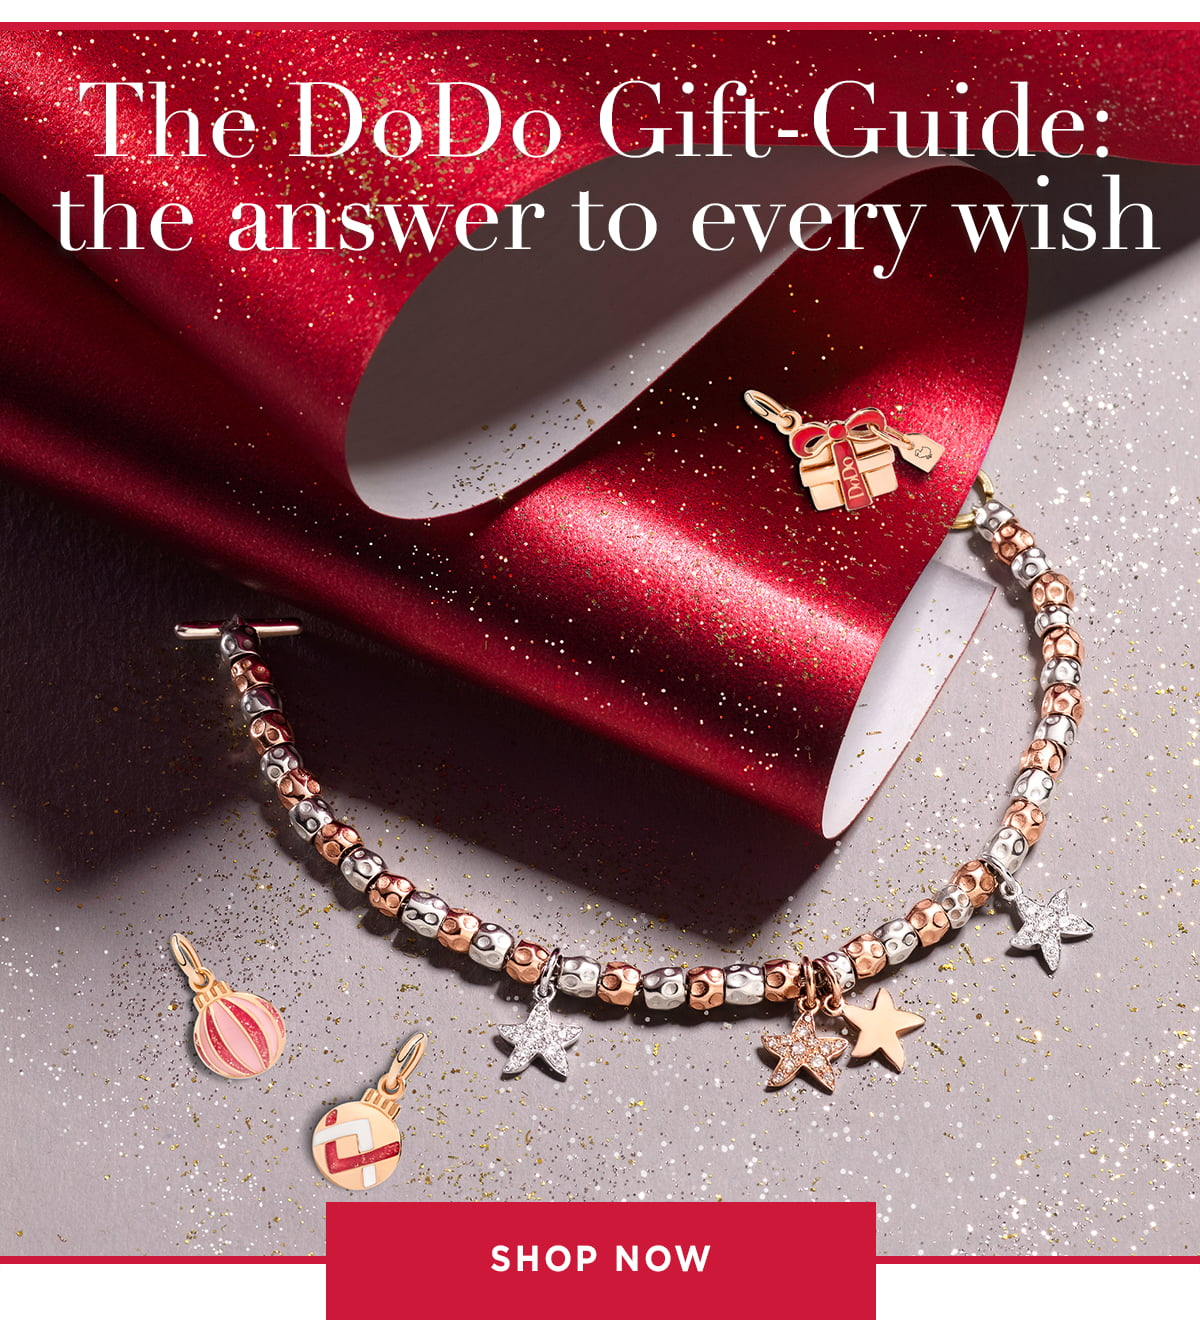 The DoDo Gift-Guide: the answer to every wish